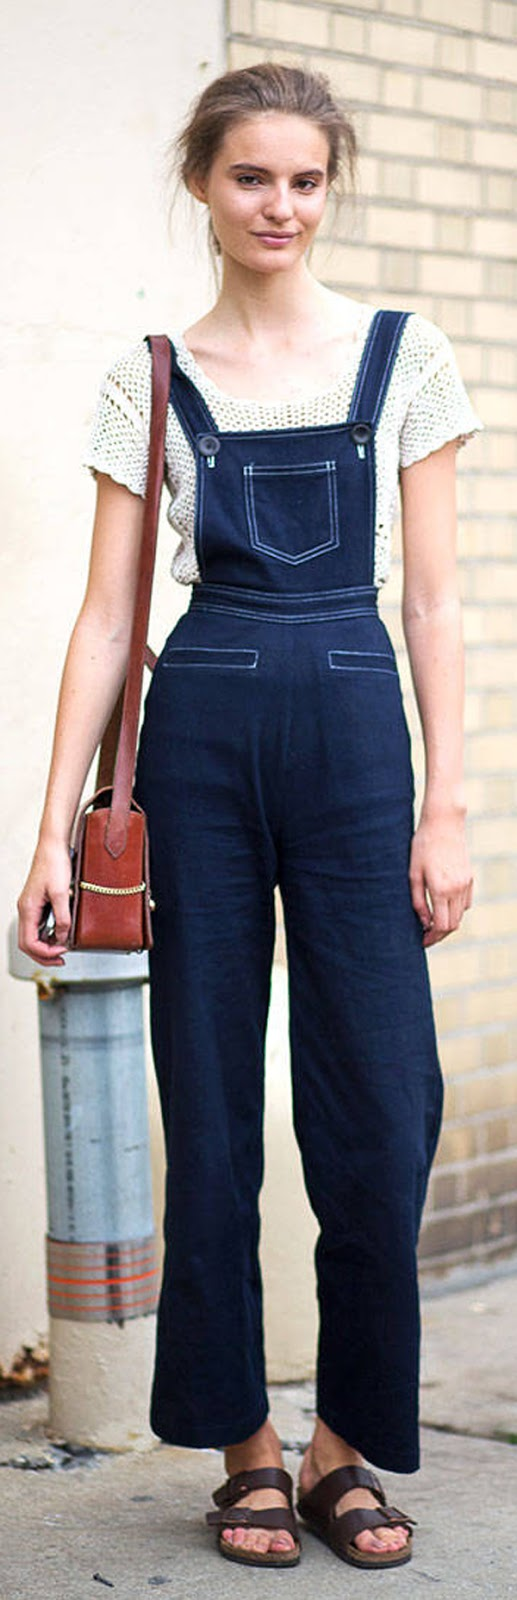 denim cute overalls idea